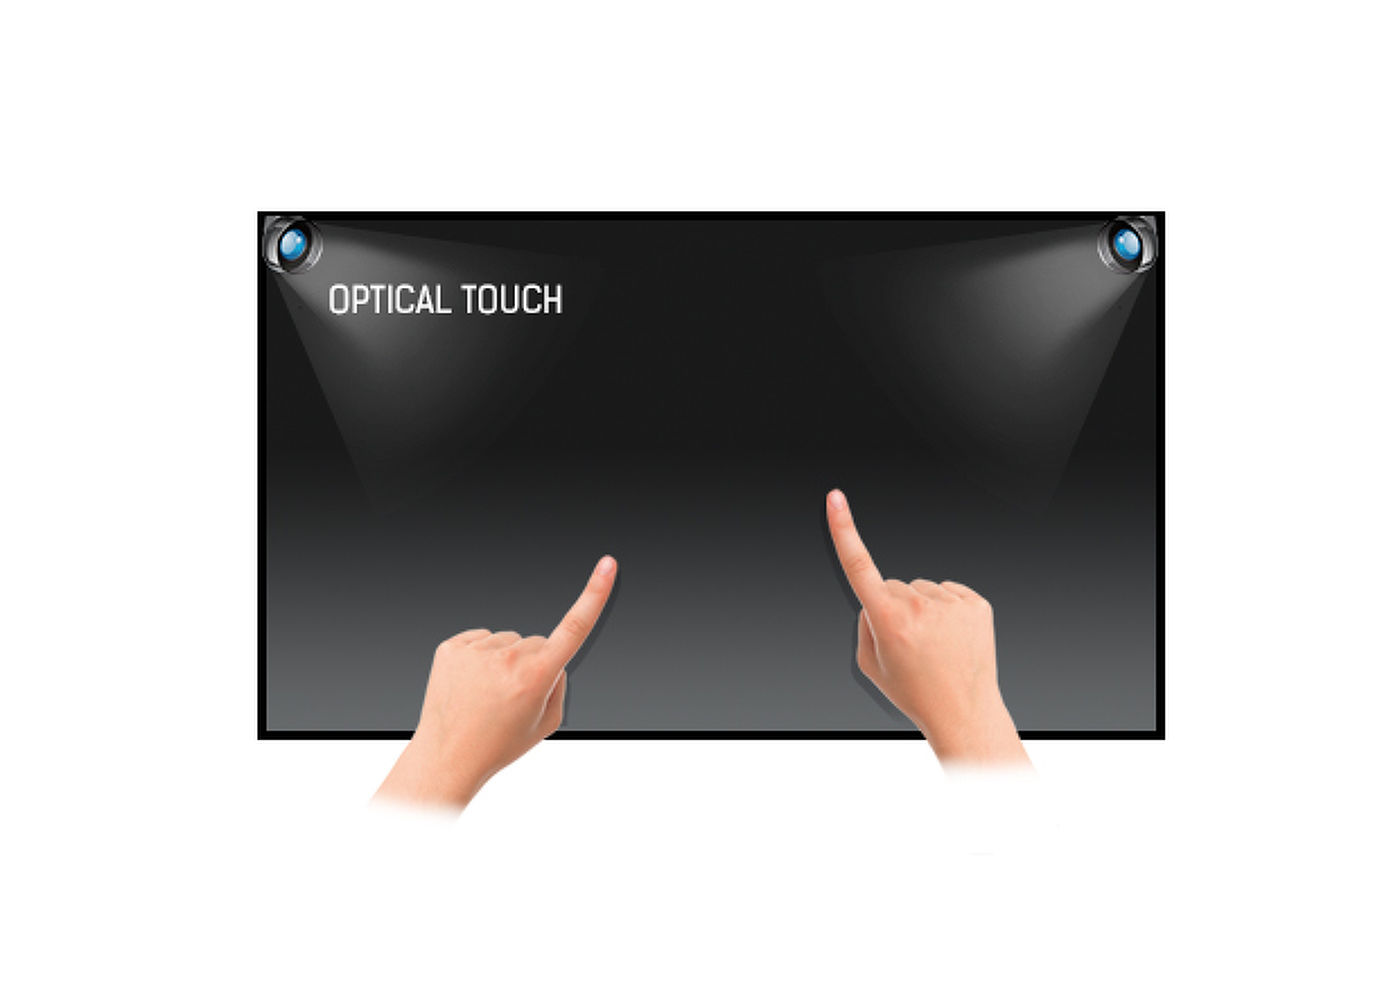 TOUCH TECHNOLOGY - OPTICAL